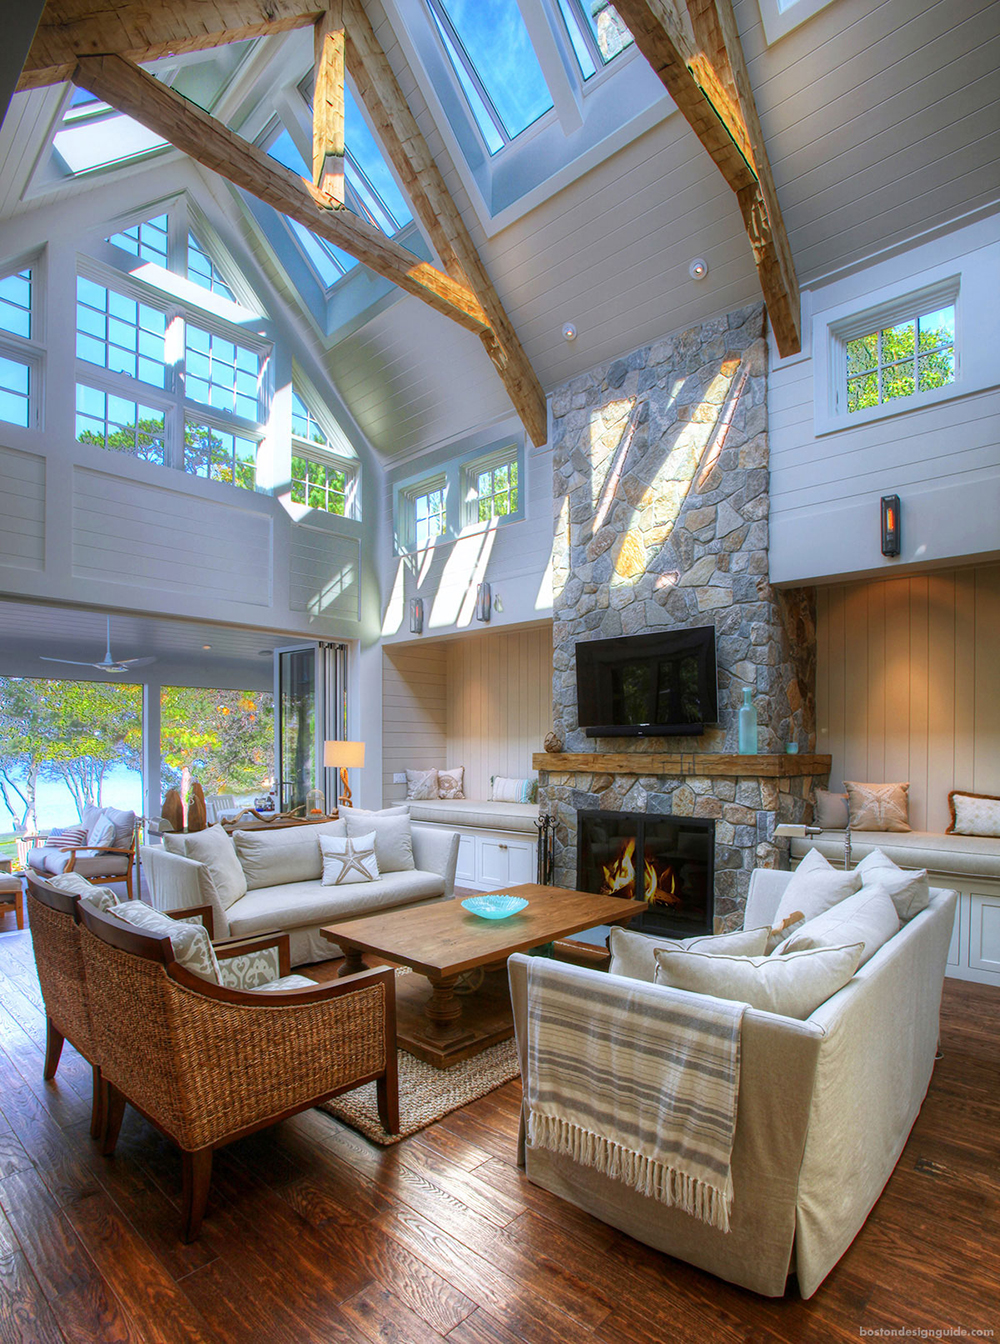 Home Renovation Tips from the Pros   Boston Design Guide